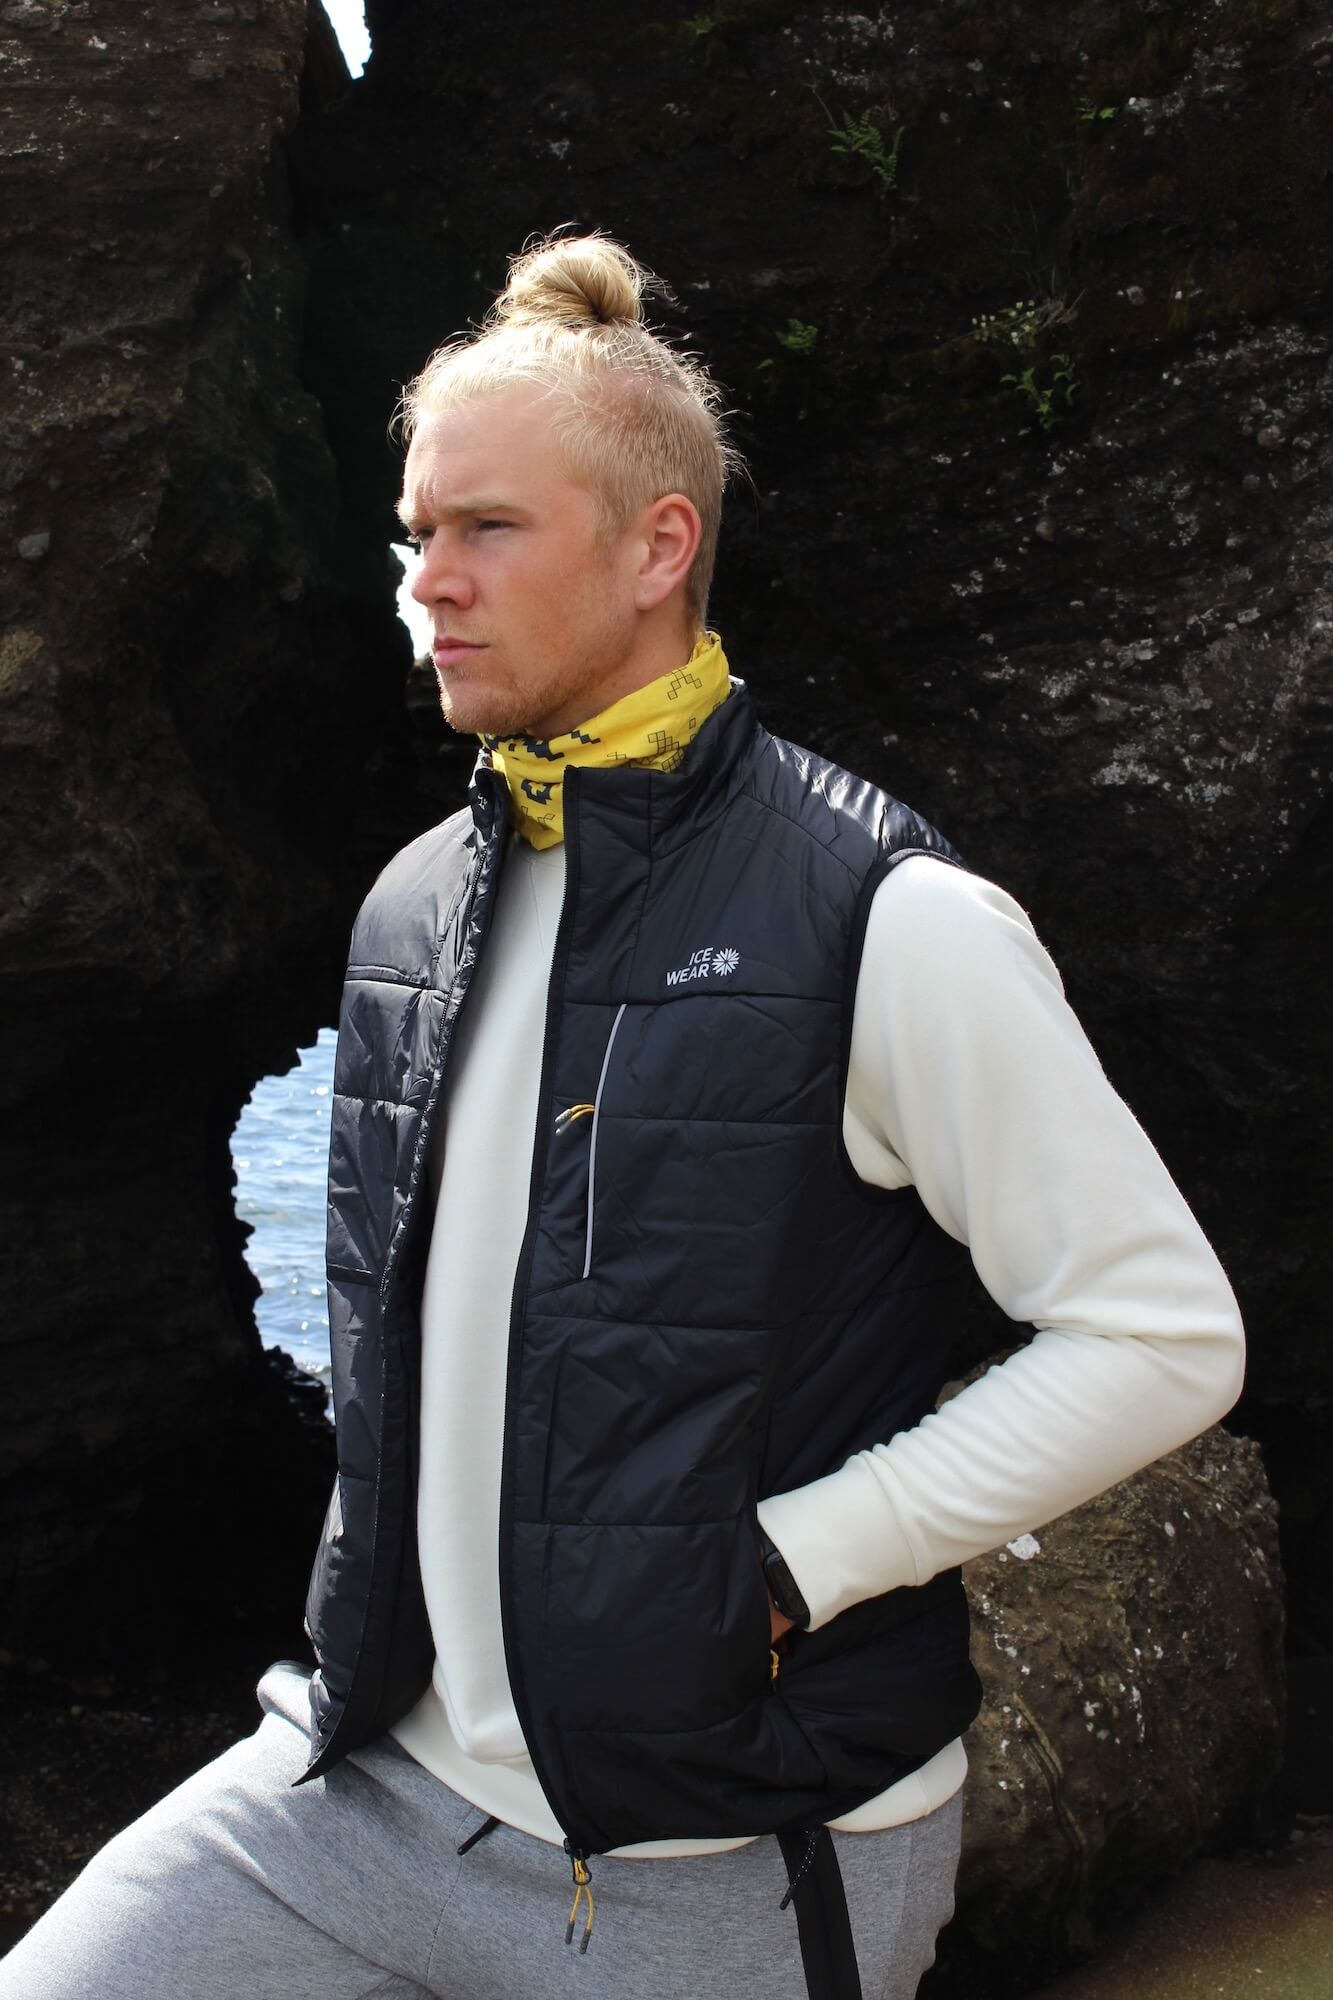 man iceland outdoor rocks with vest